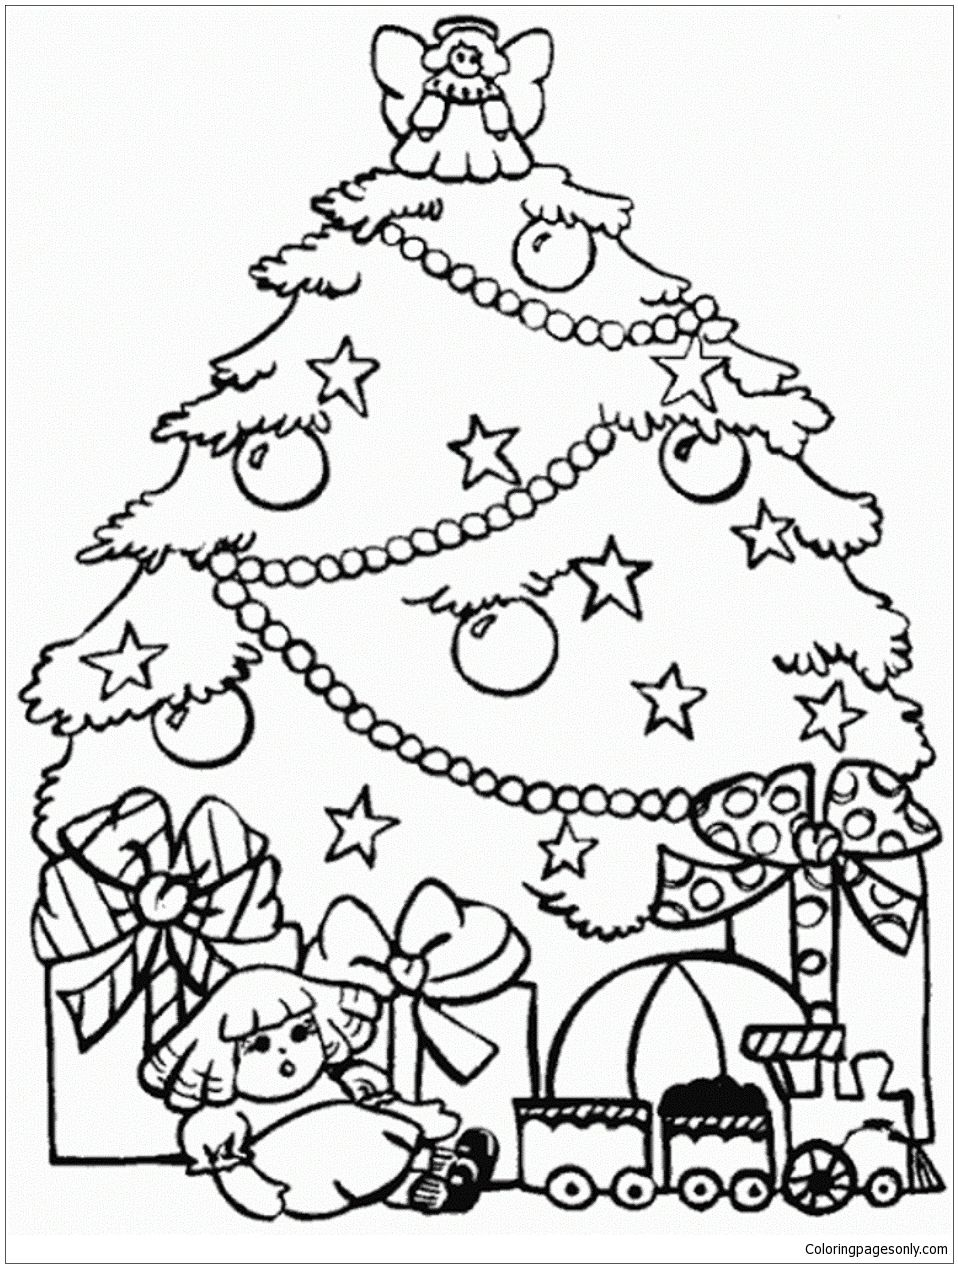 Presents And Christmas Tree Coloring Page | Christmas Coloring Pages ...